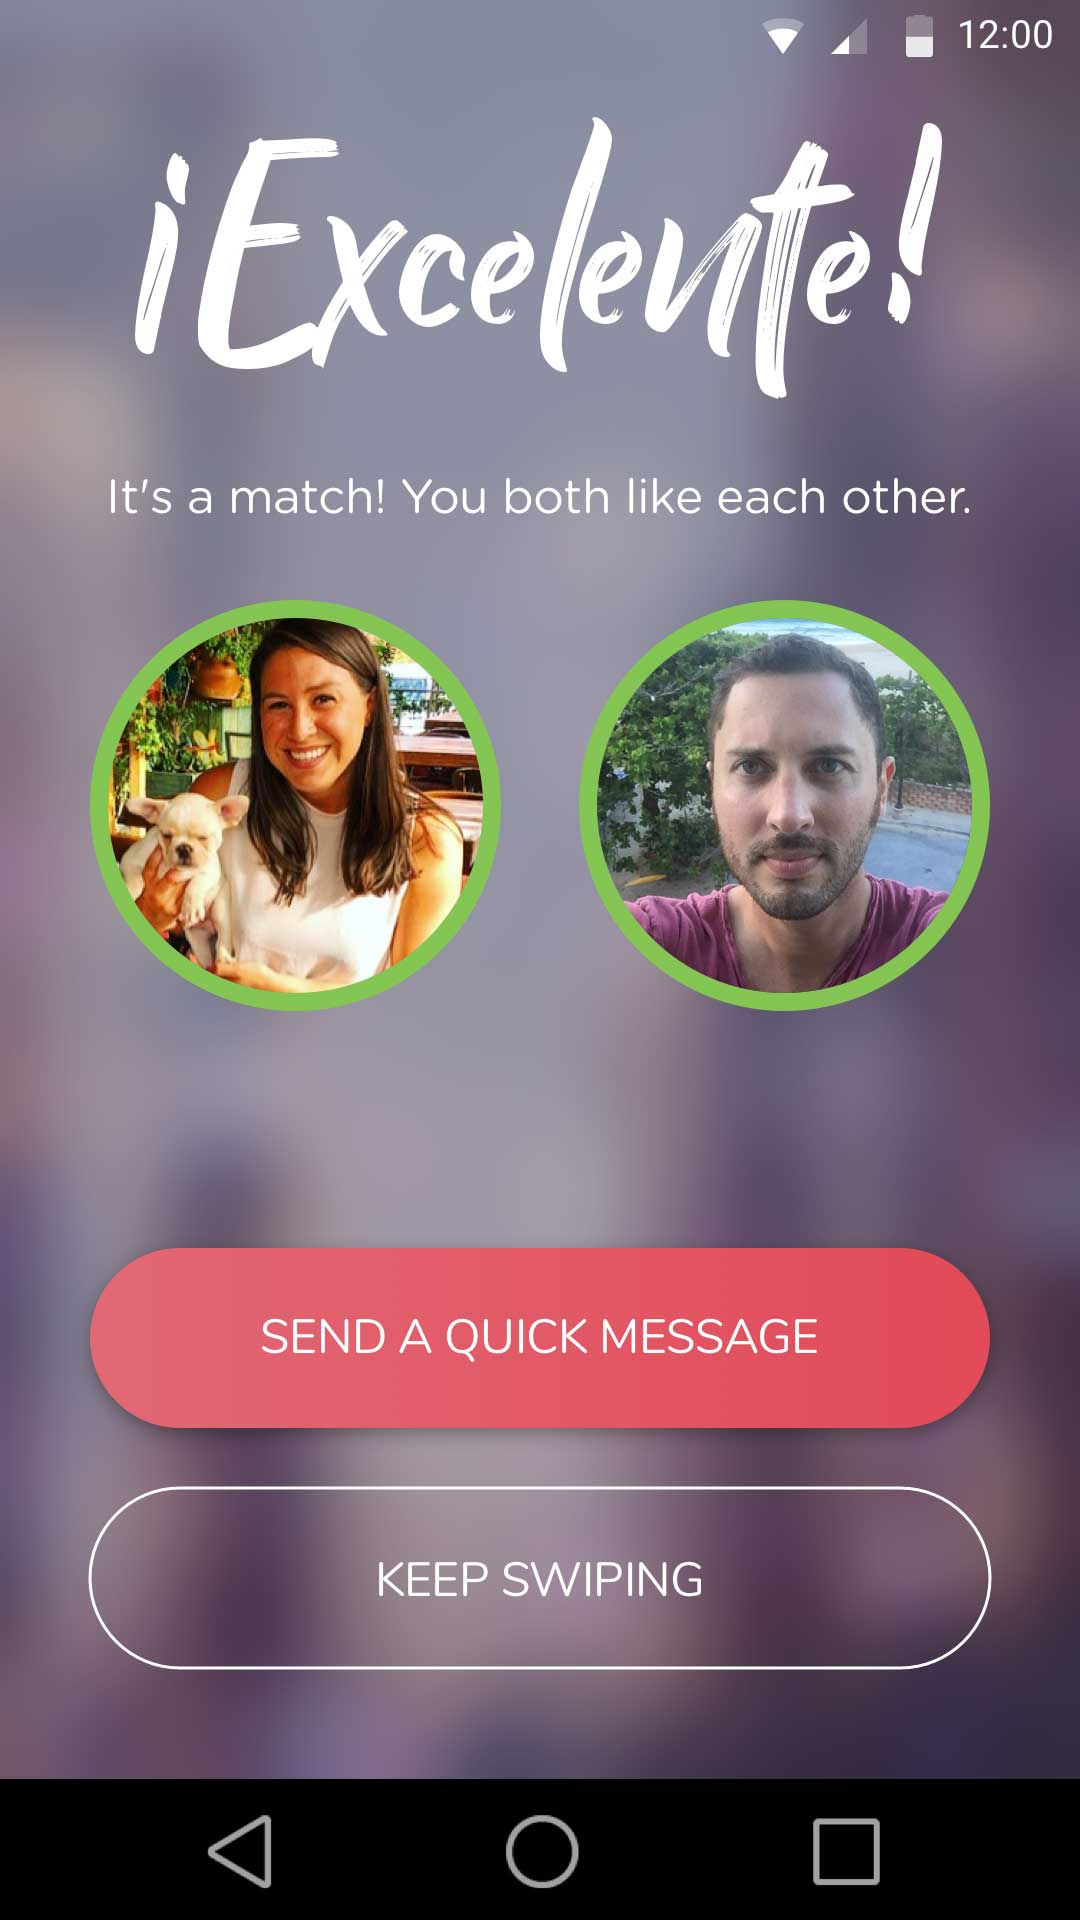 Chispa's Interface When Users Match